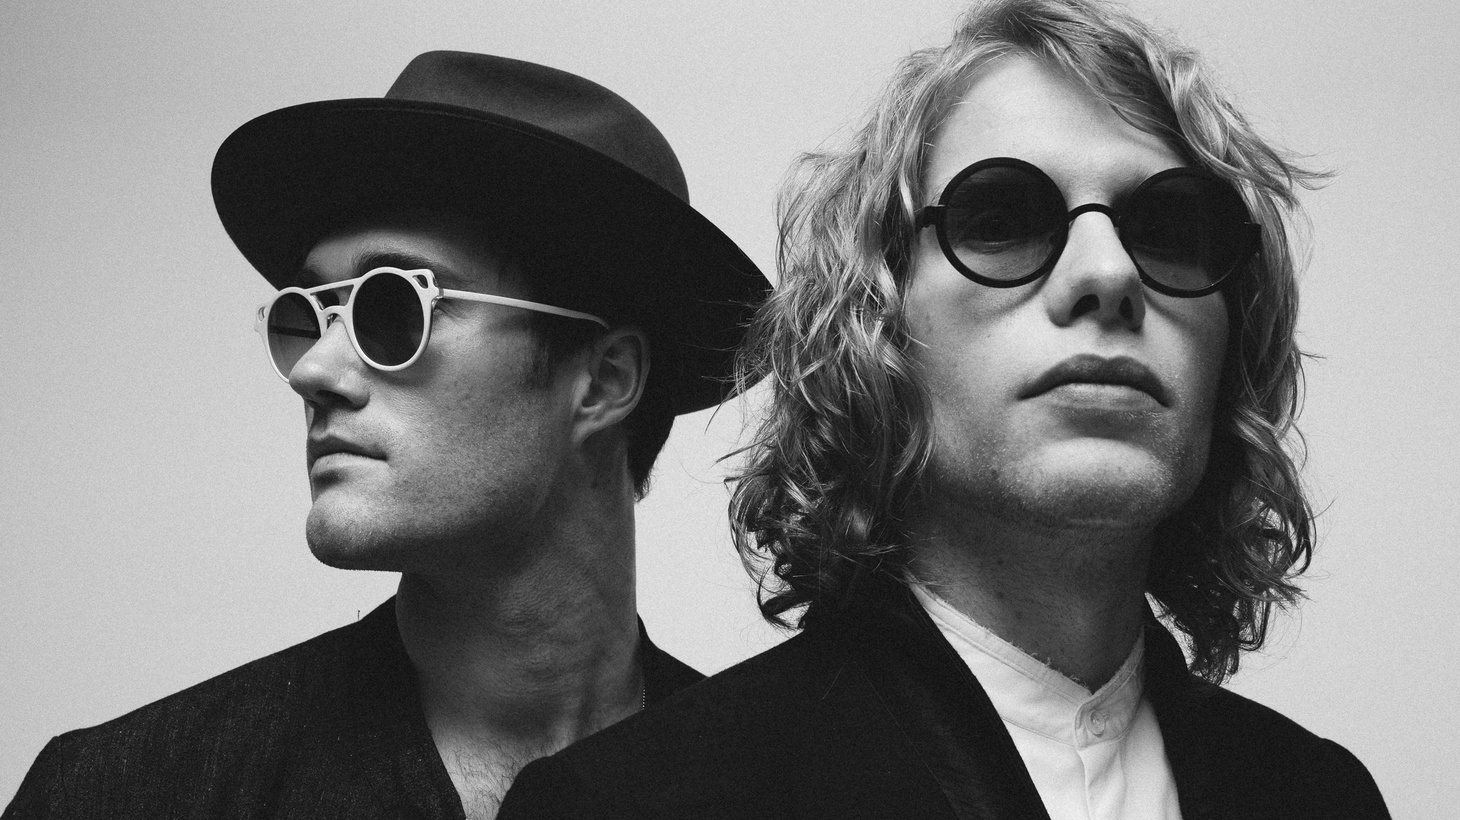 """Grammy-award winning duo Bob Moses have released their first new music since their head-spinning debut album. Appealing to rock and dance music fans alike, """"Heaven Only Knows' mixes classic songwriting with slinky guitar work and an EDM beat."""